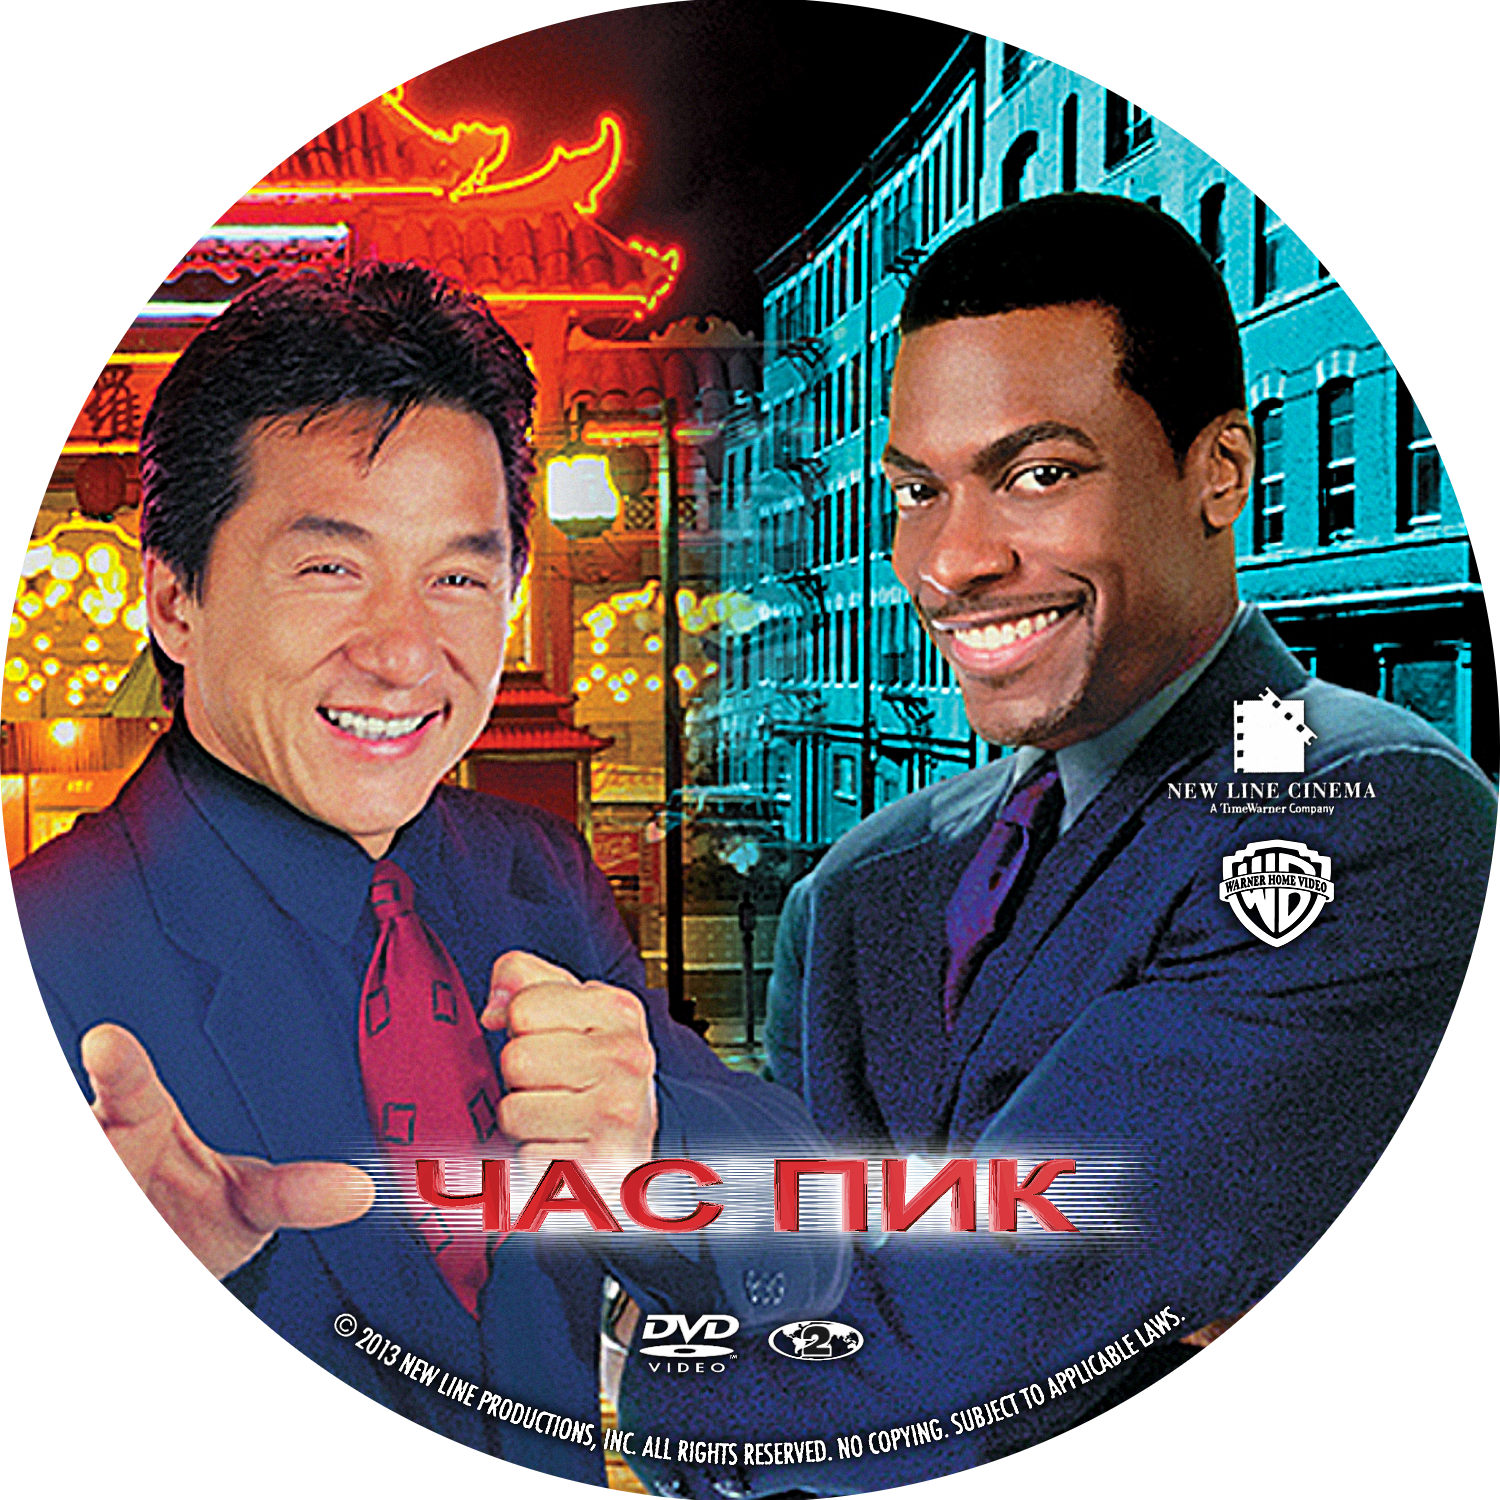 evaluation of the movie rush hour Rush hour is a 1998 action comedy starring jackie chan as lee, an inspector with the hong kong police force who travels to los angeles in order to investigate the kidnapping of the daughter of a chinese diplomat.